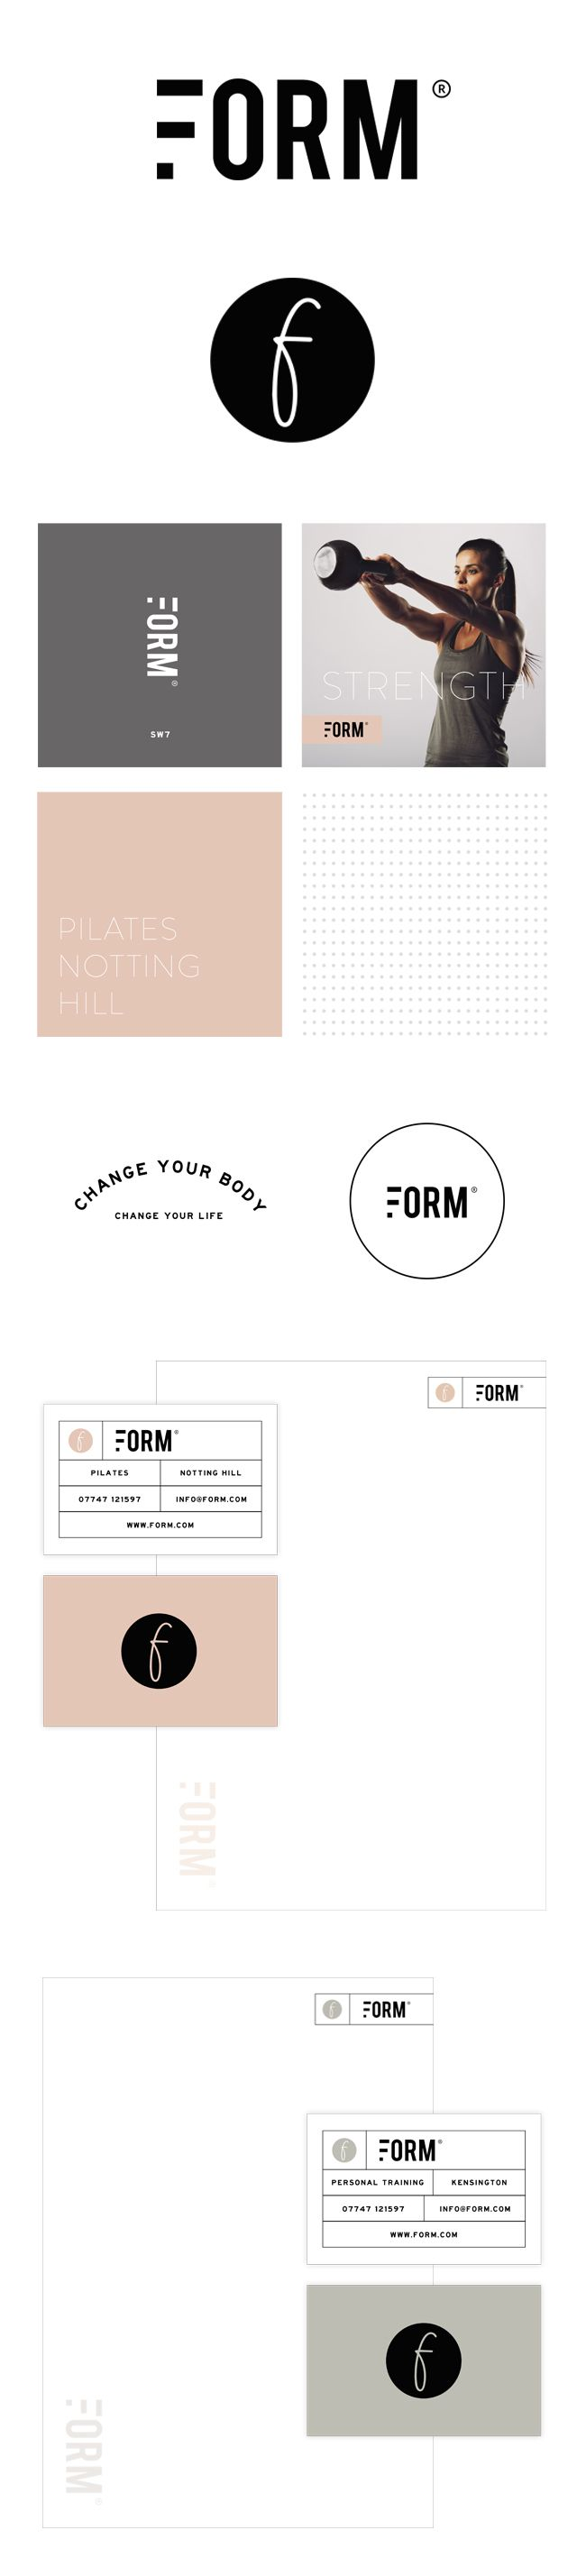 Brand Identity For Form | Love the tall bold letters in the logo and the color palette - beautiful, simple and yet characteristic